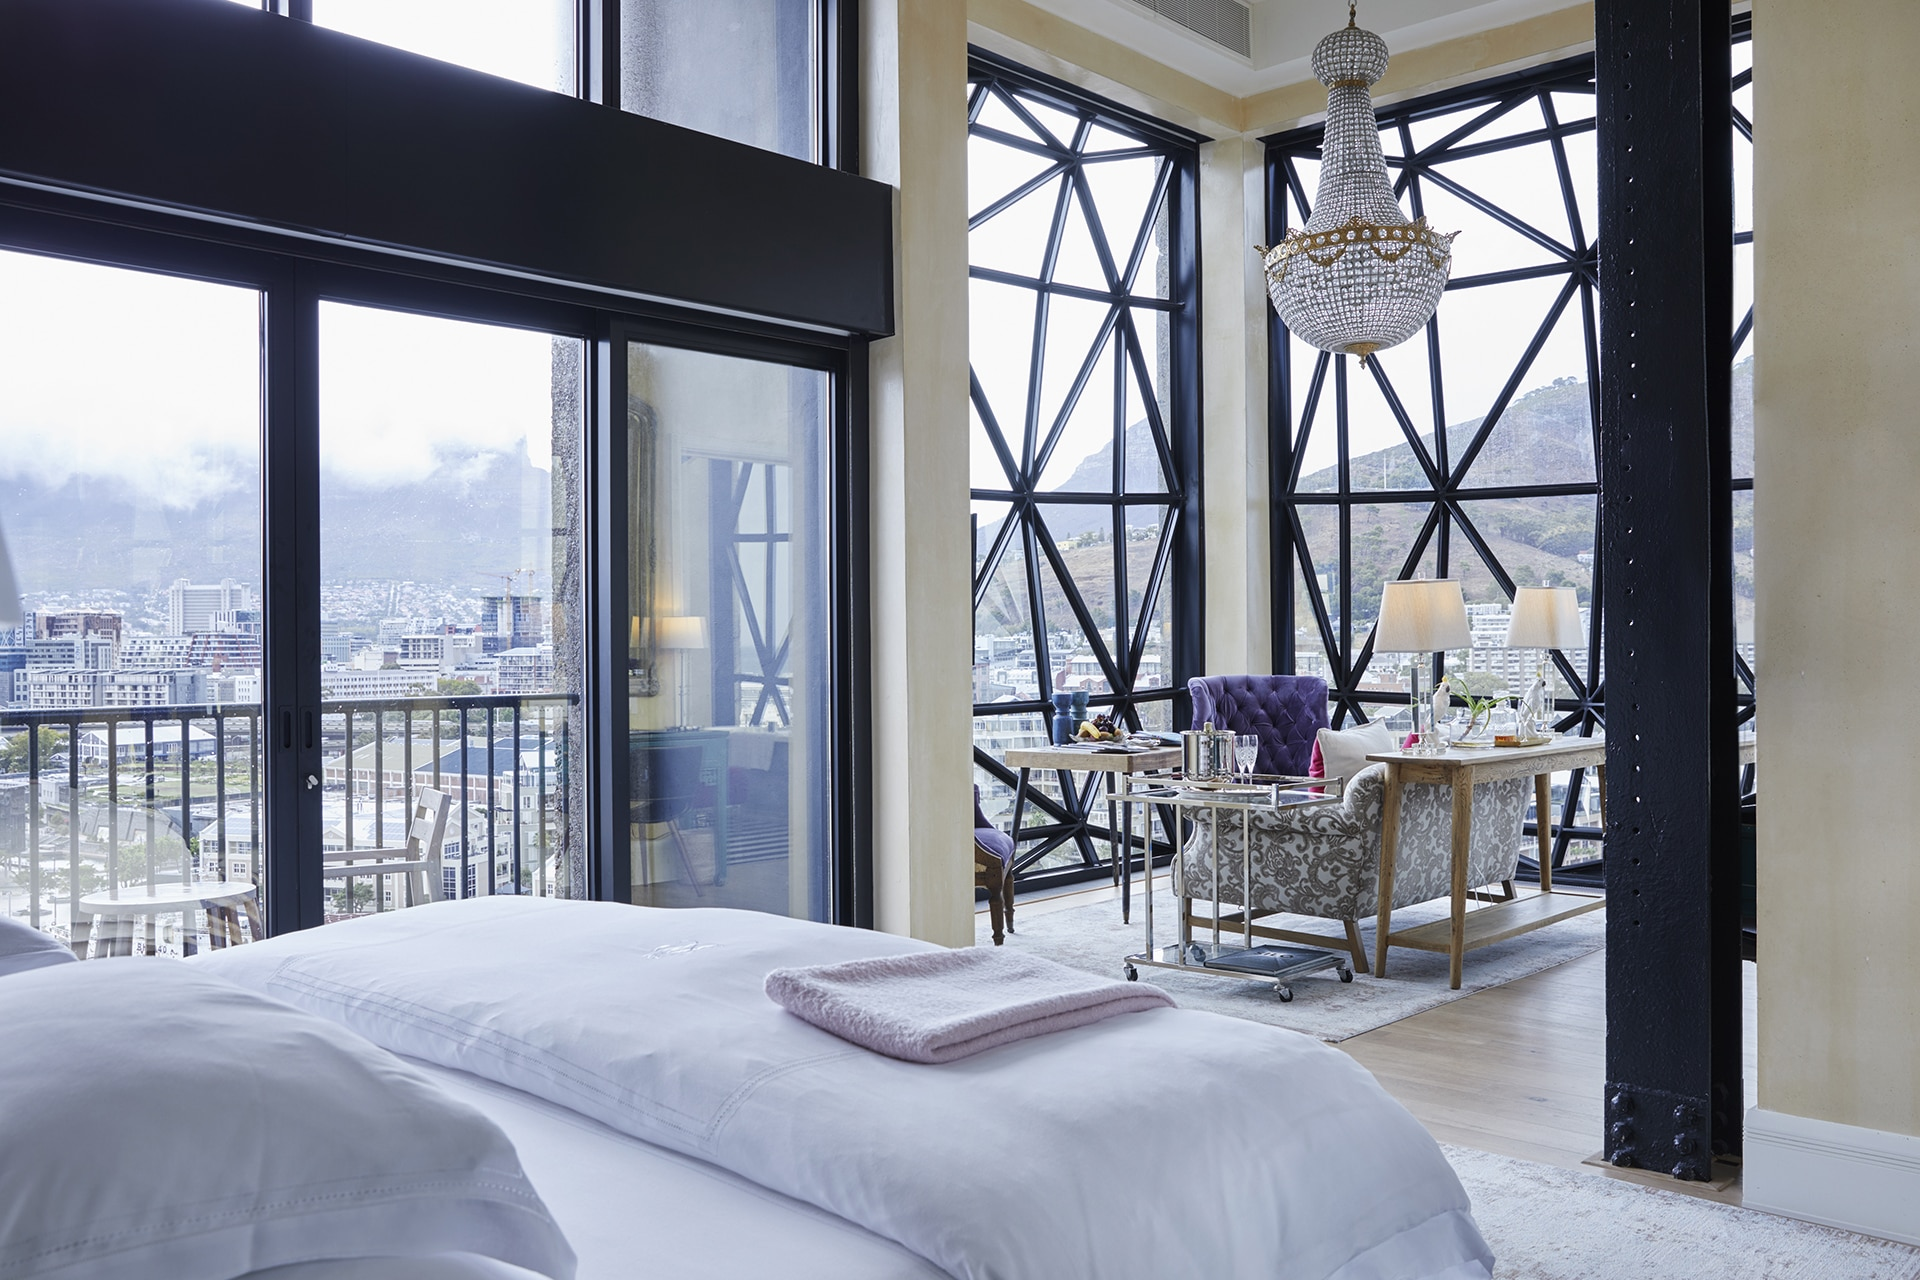 Inside Cape Town's most luxurious hotel